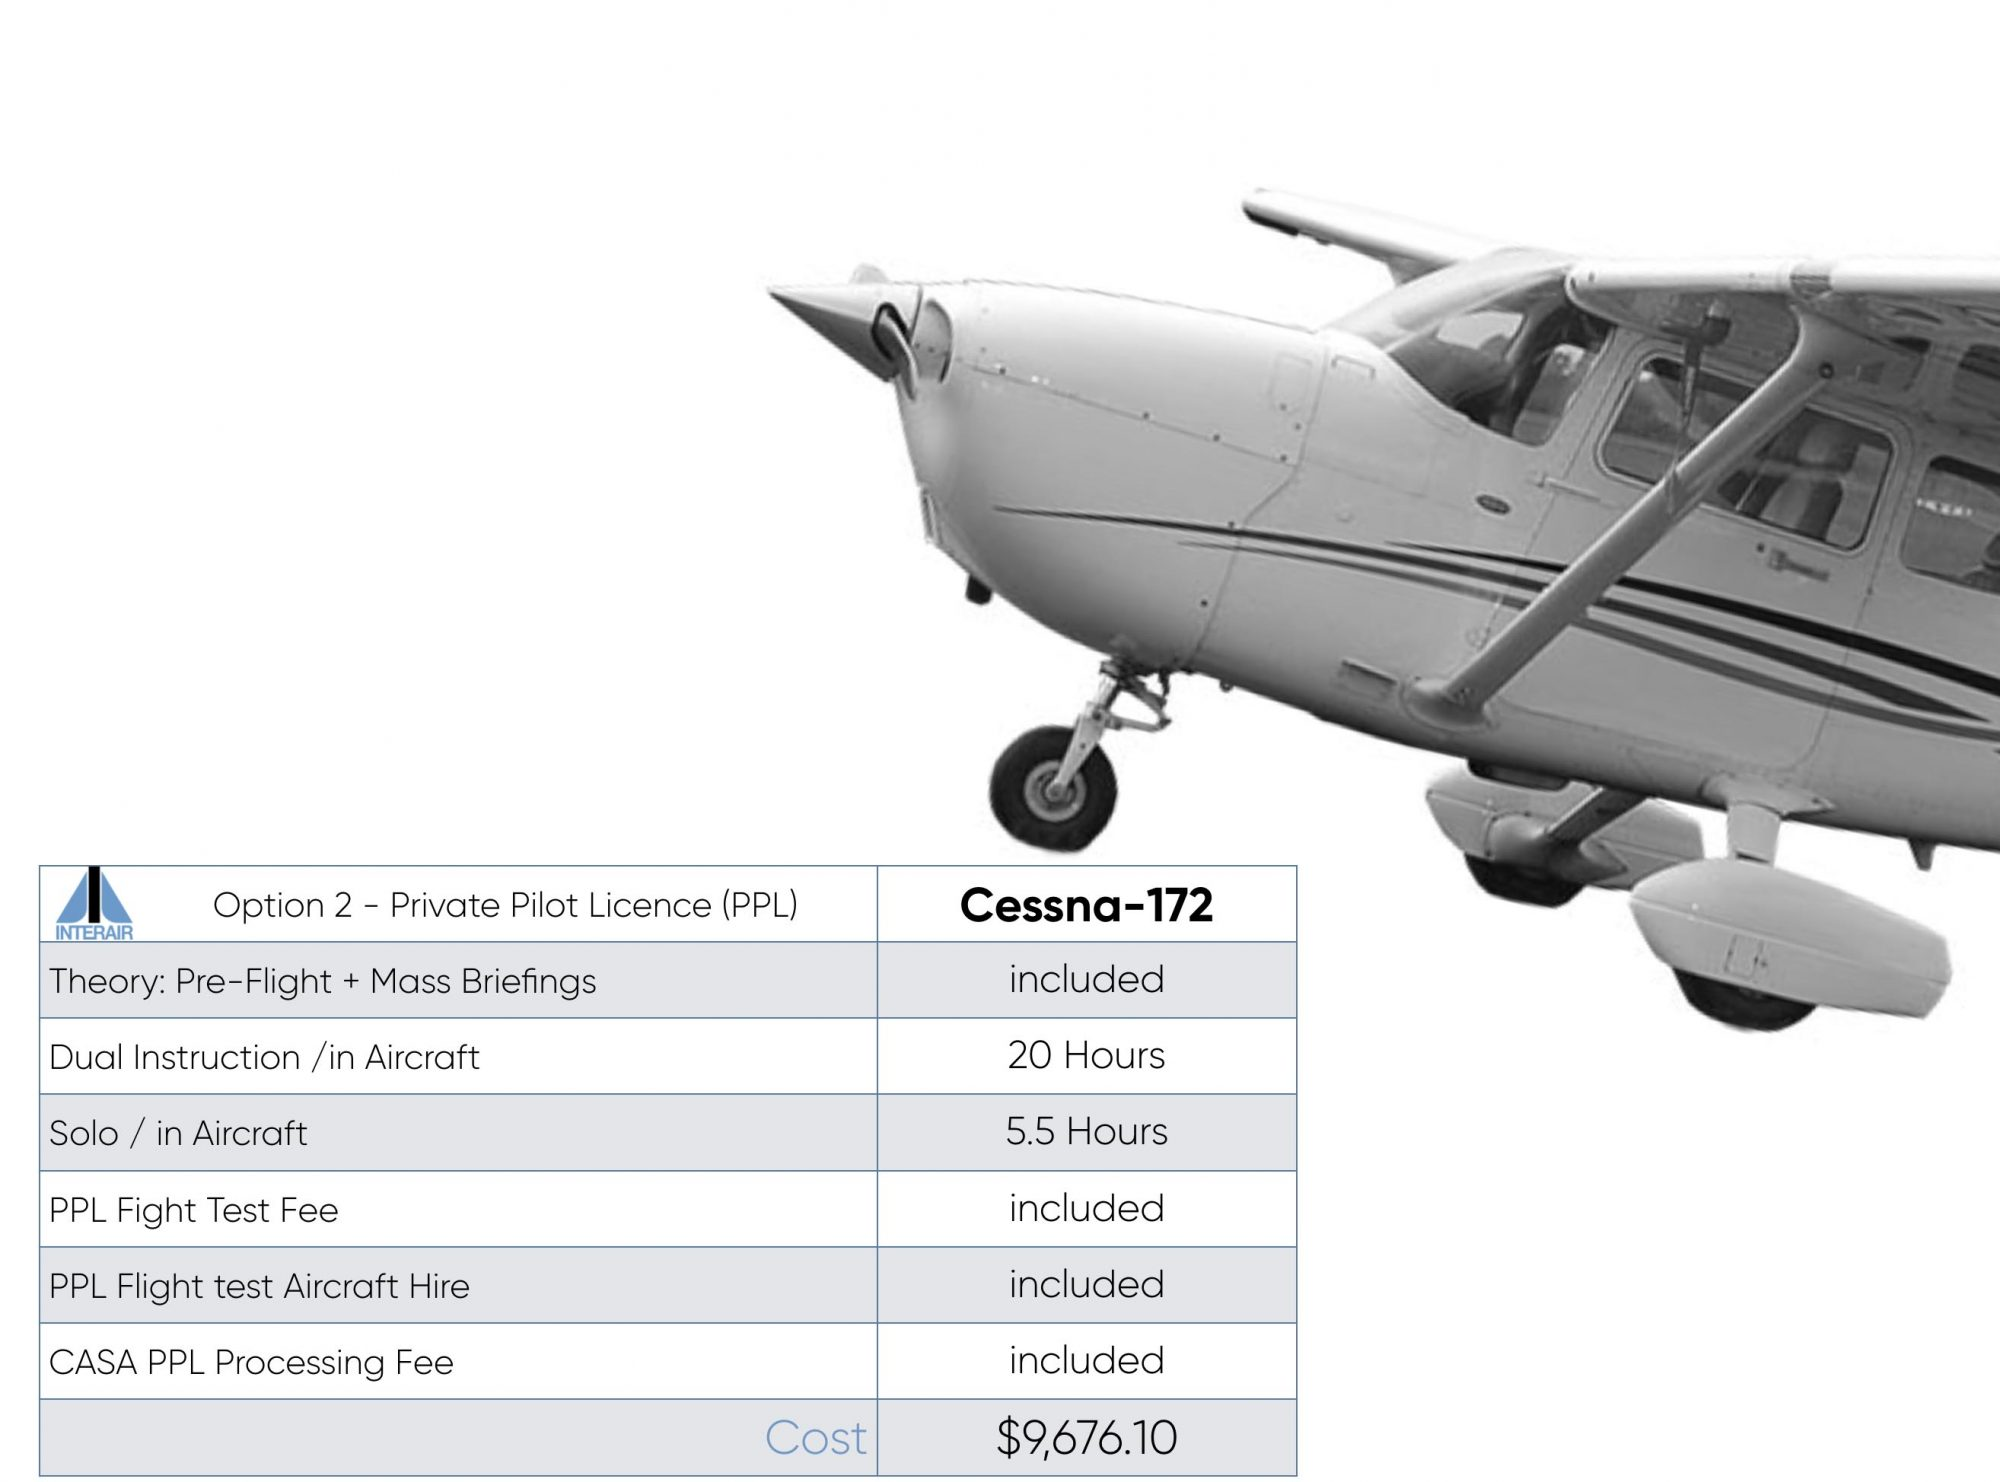 COST OF PRIVATE PILOT LICENCE (PPL)